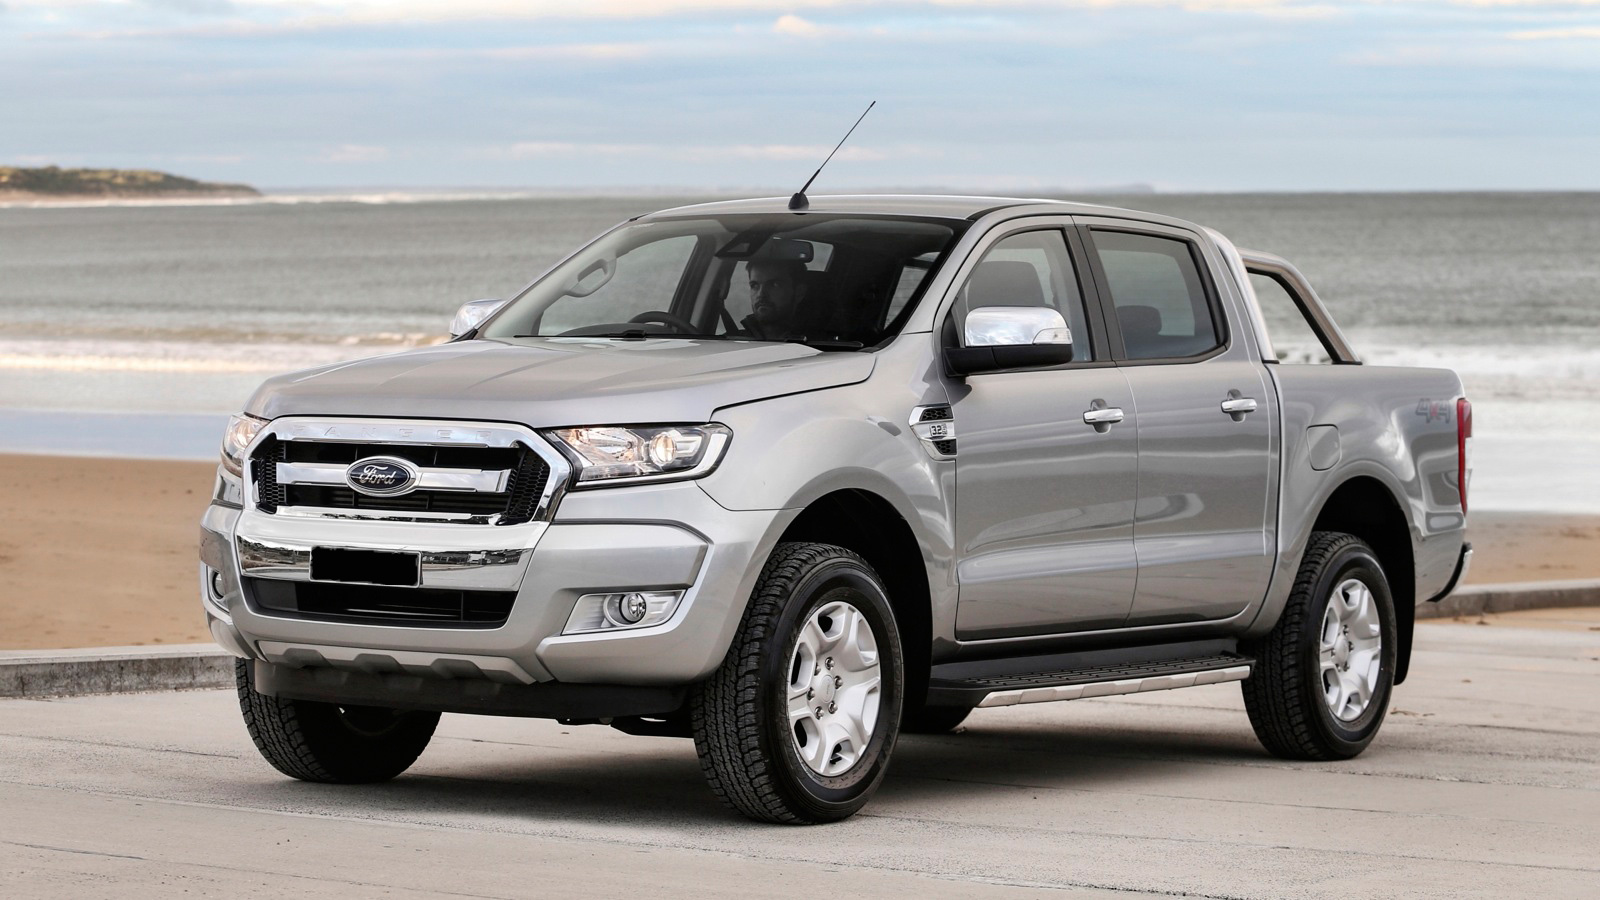 2016 2017 Silver Bonnet Scoop Hood For Ford Ranger T7 Black Endeavour Everest Ycsunz In Styling Mouldings From